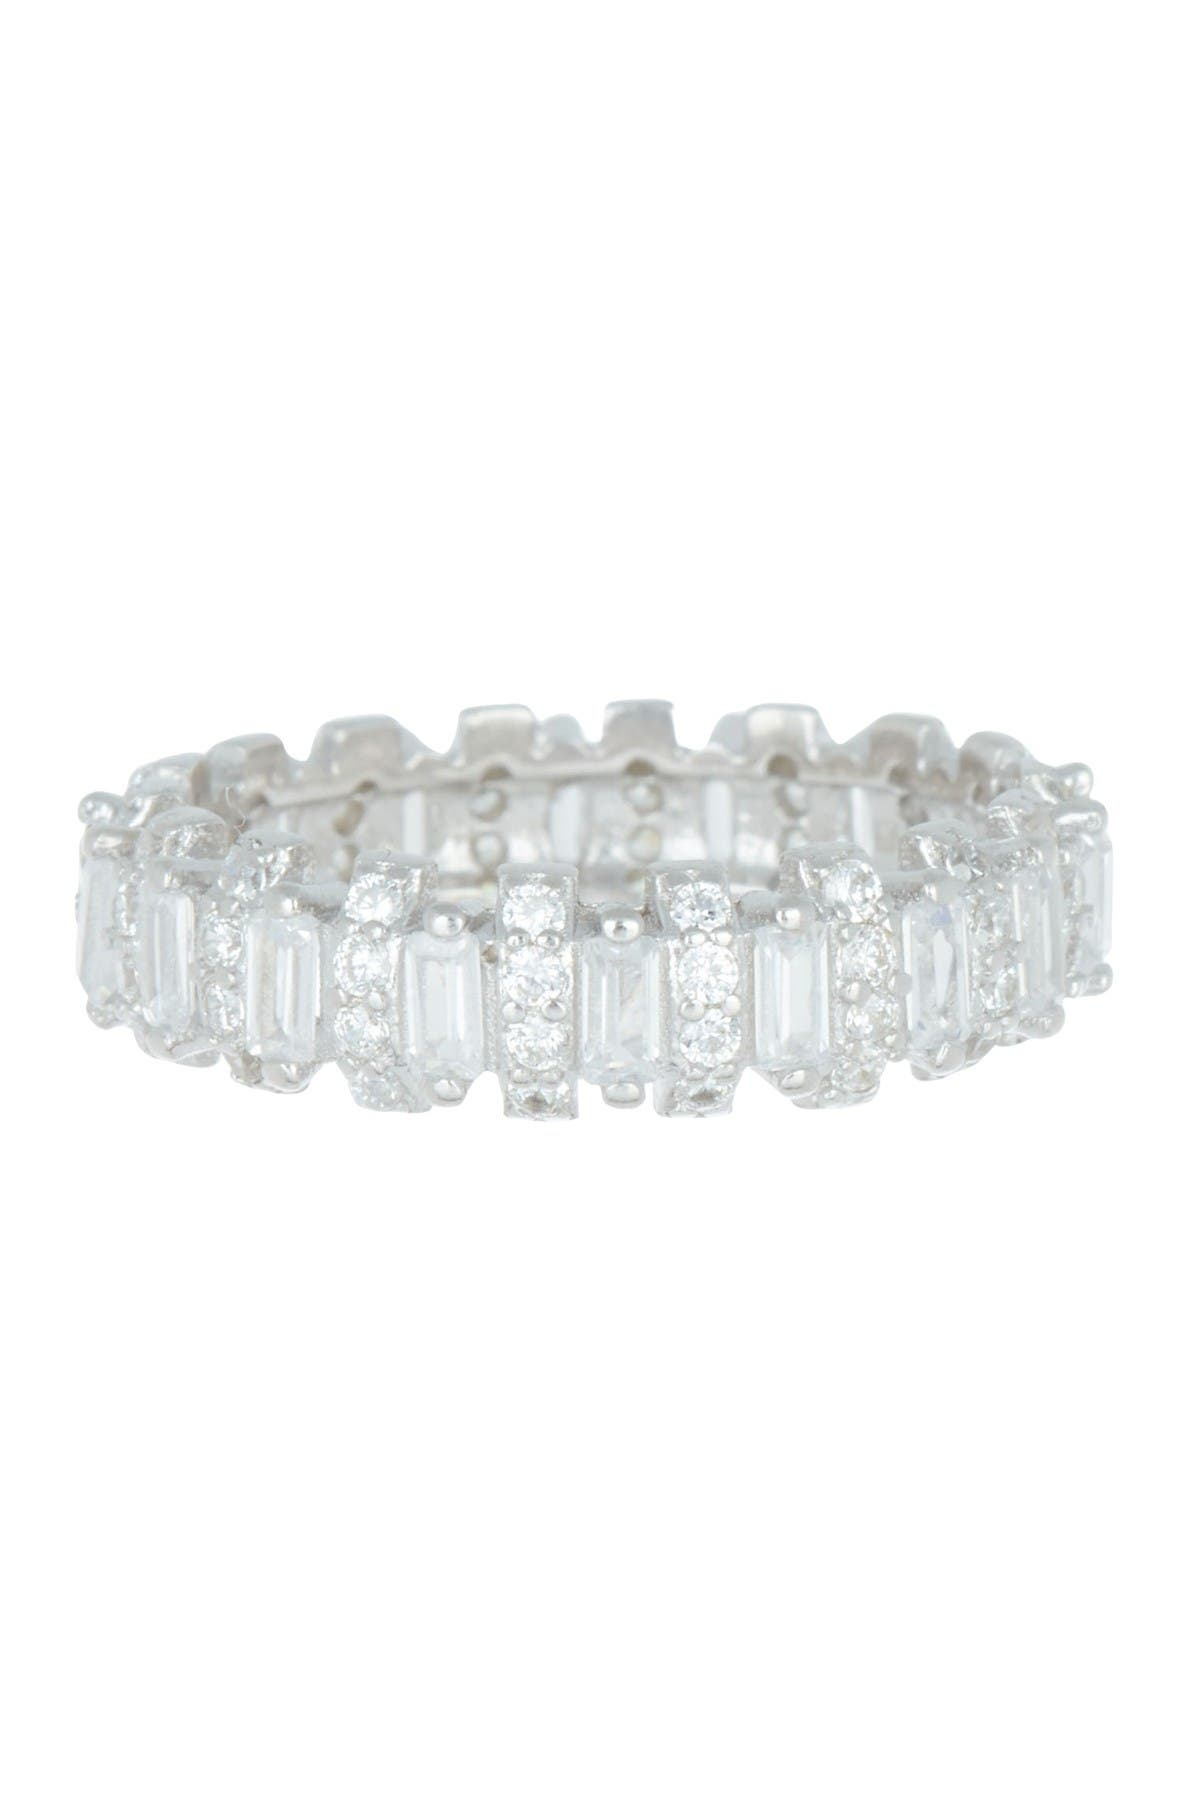 Image of Savvy Cie Rhodium Plated Sterling Silver CZ Eternity Band Ring